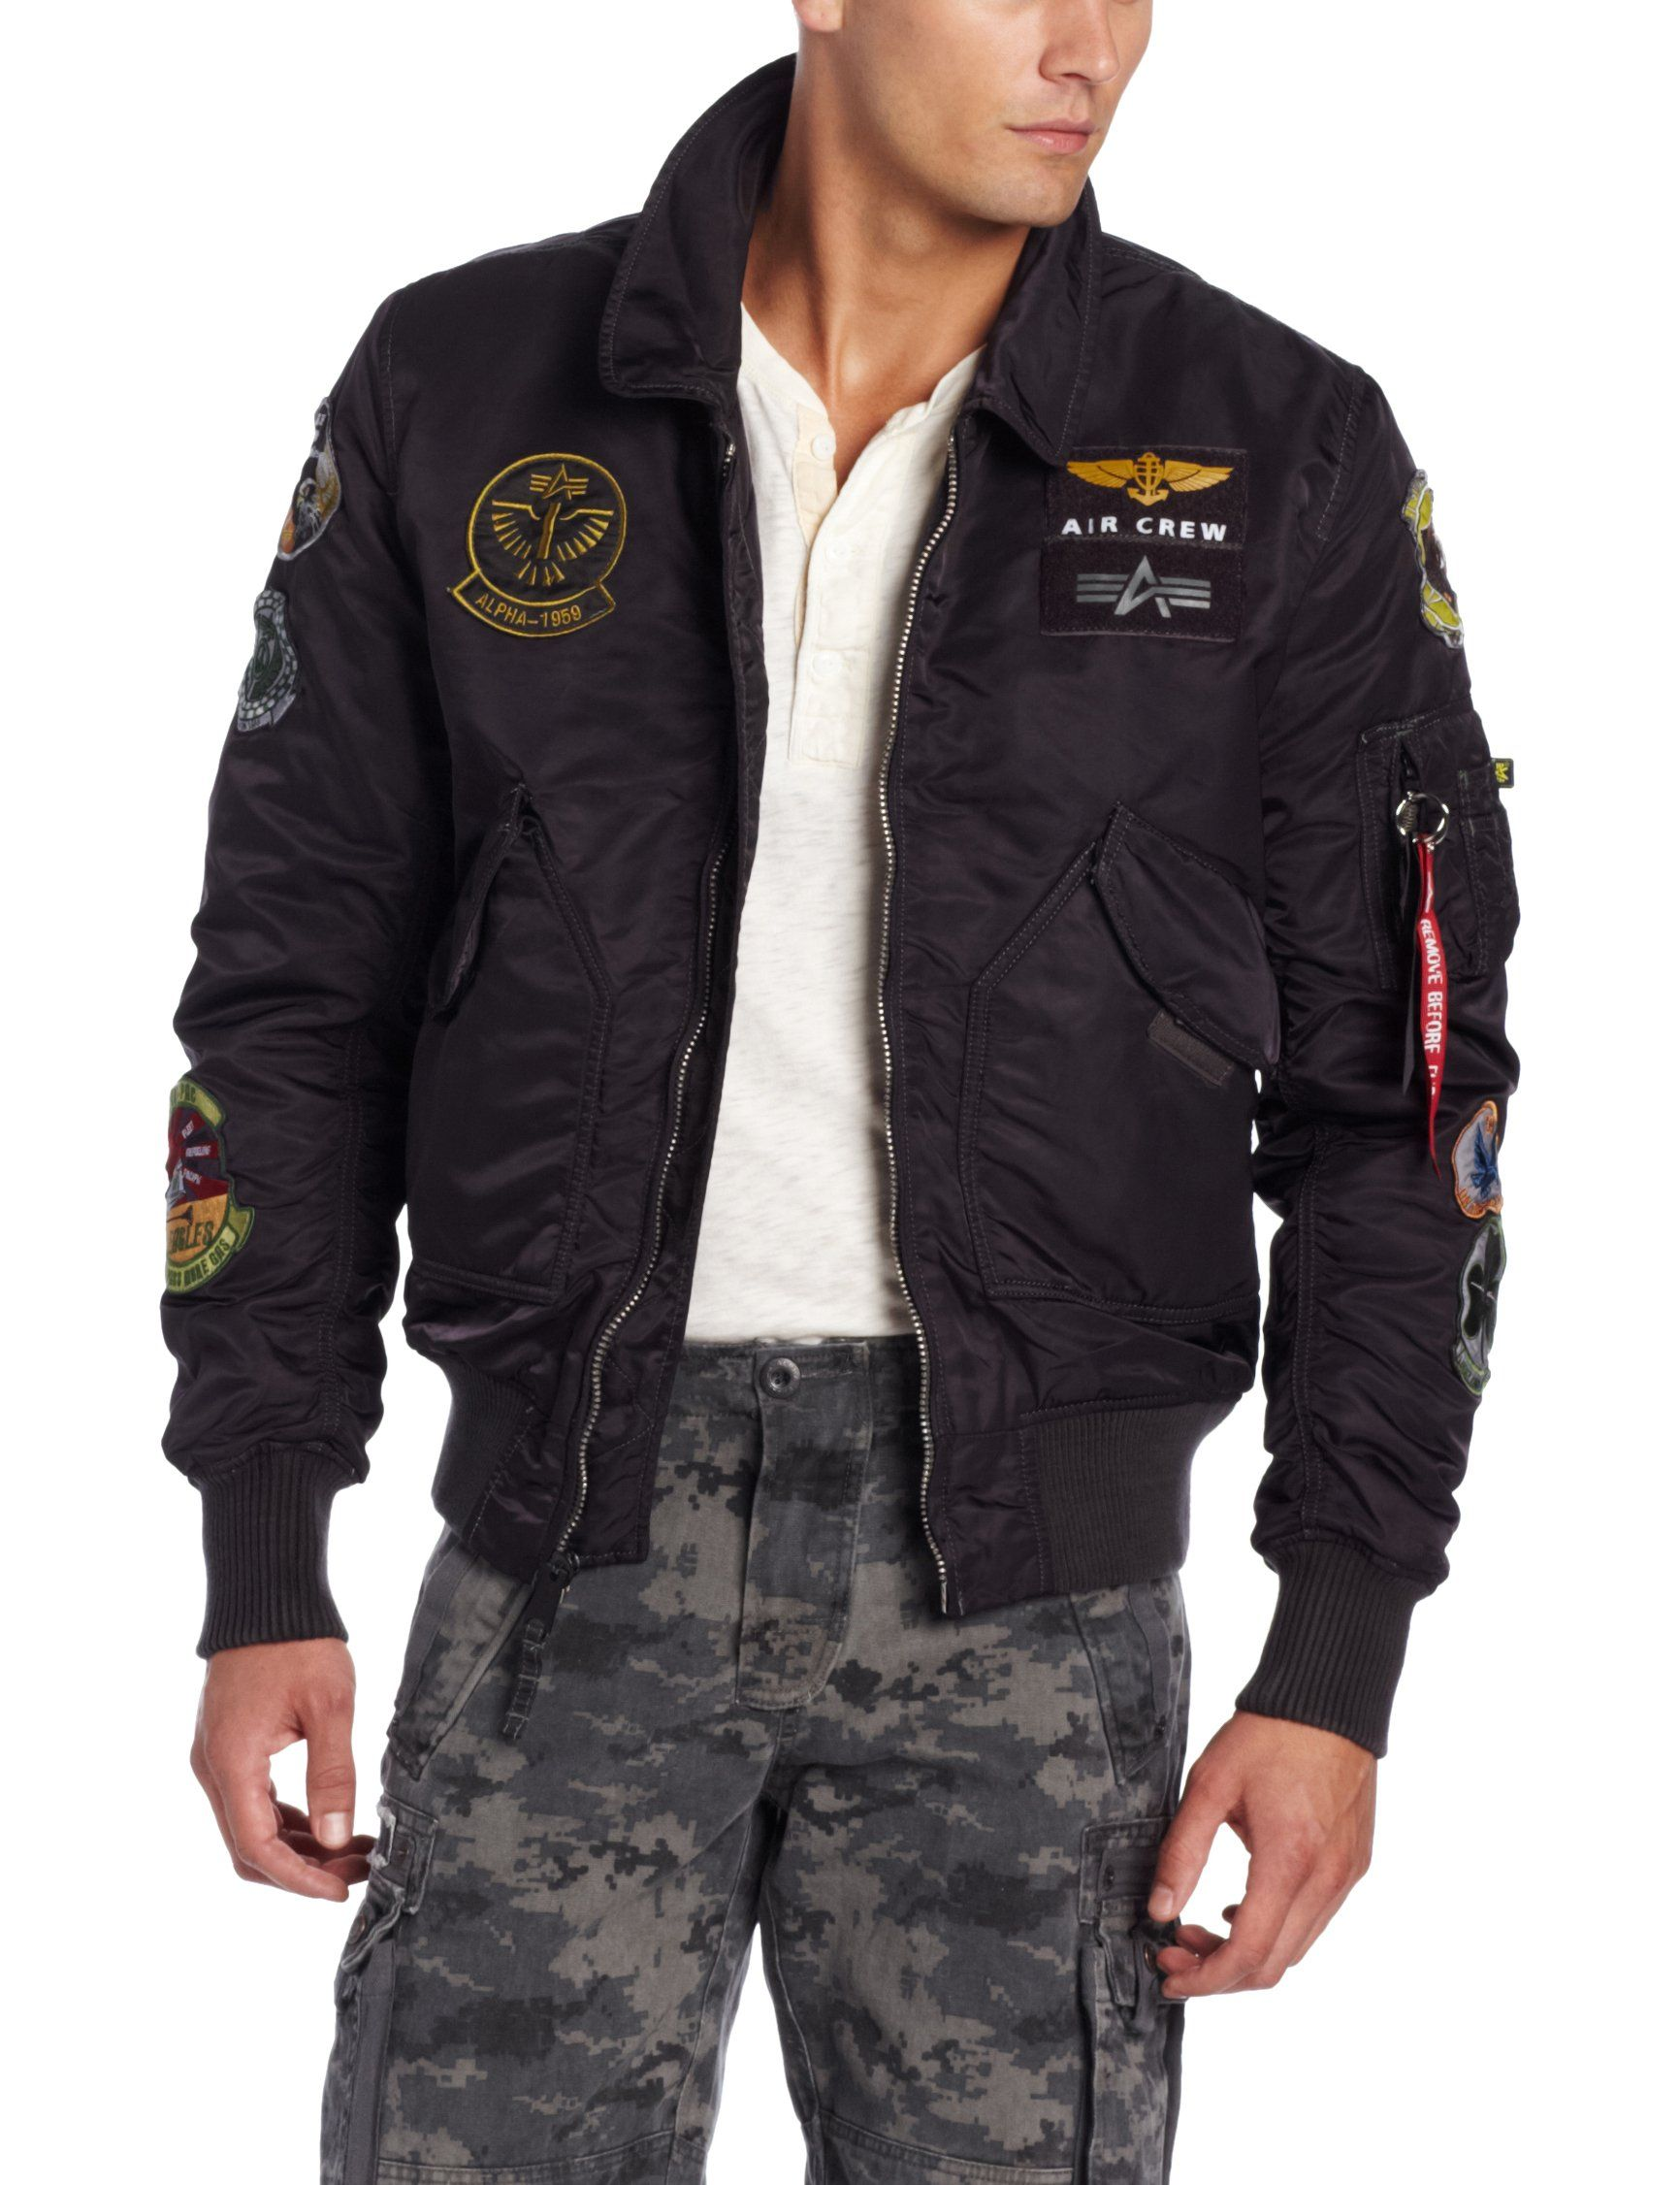 3575826d7 Alpha Industries Men's CWU Pilot X Flight Jacket, Sage Black, Large ...